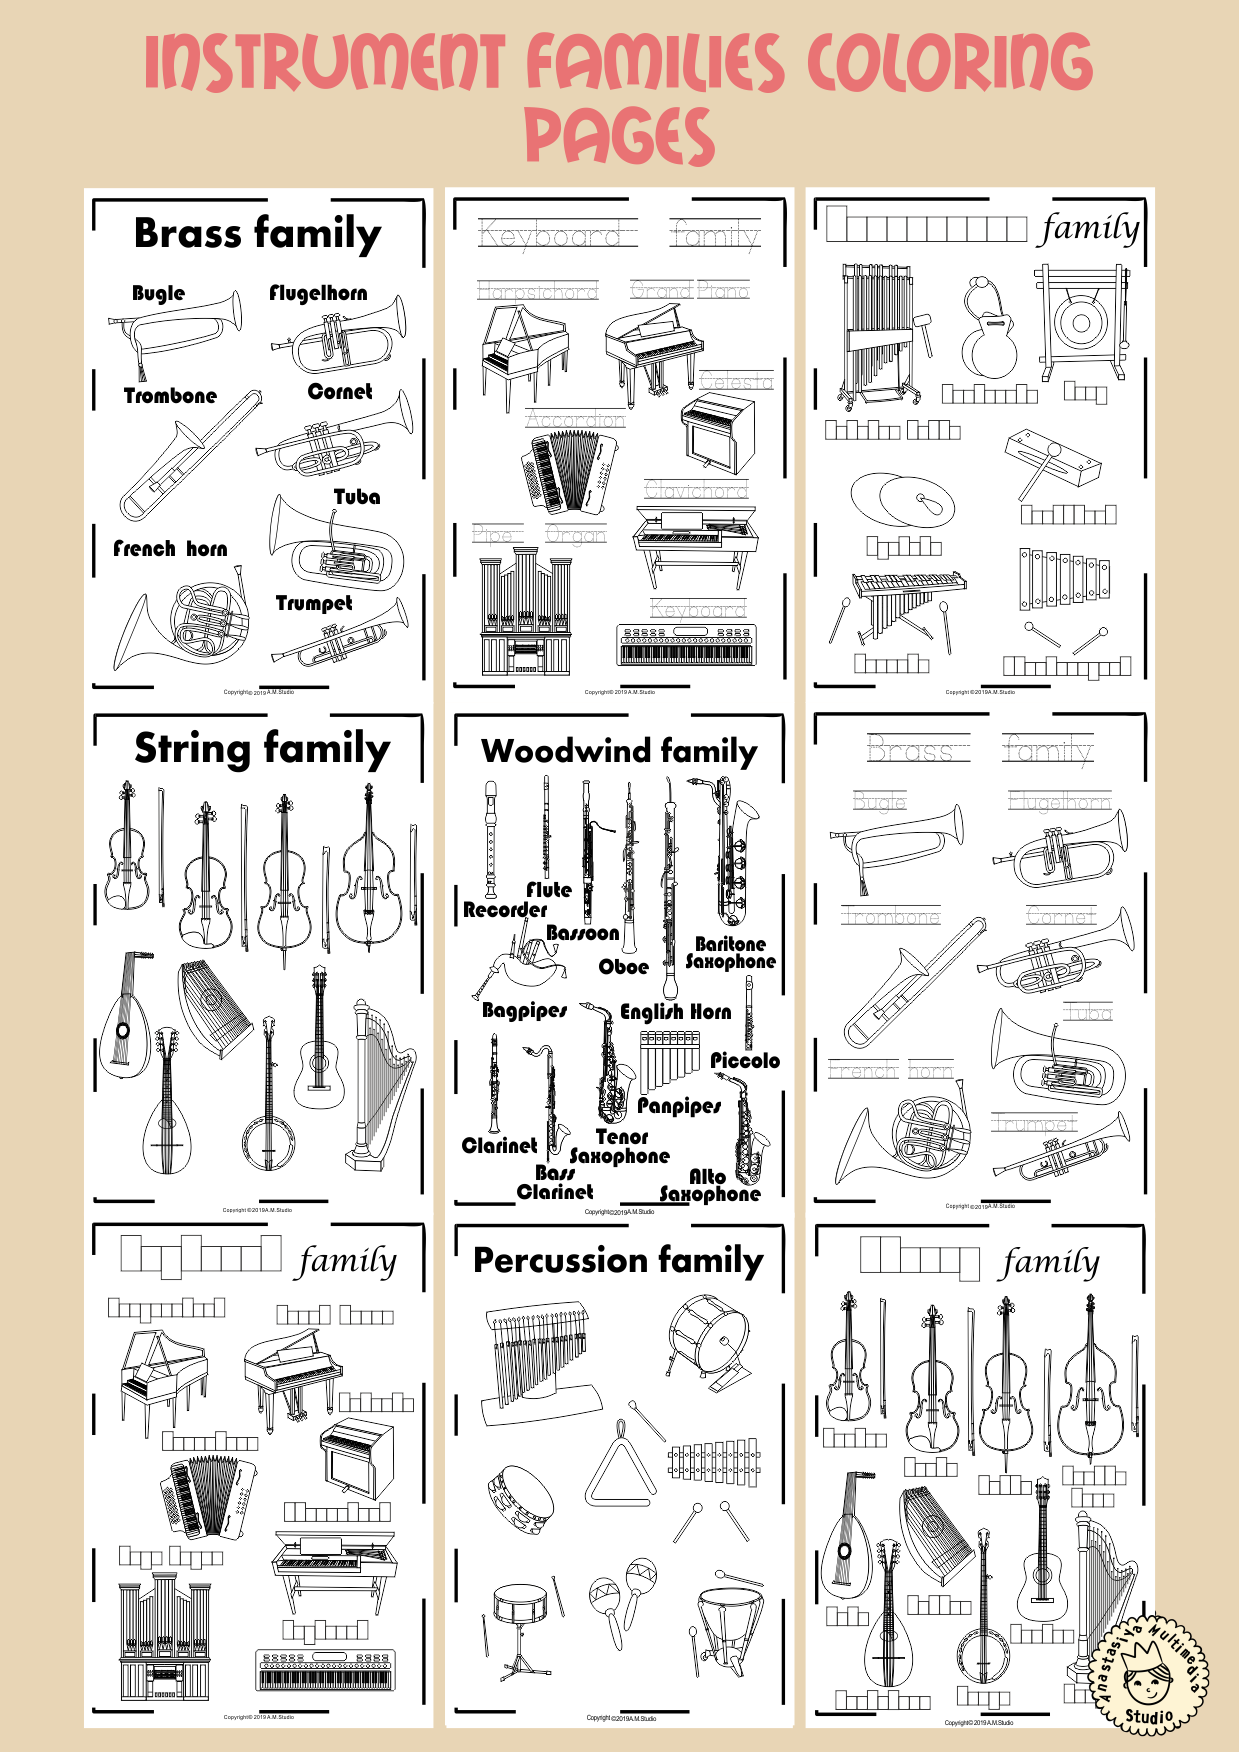 Instrument Families Coloring Pages